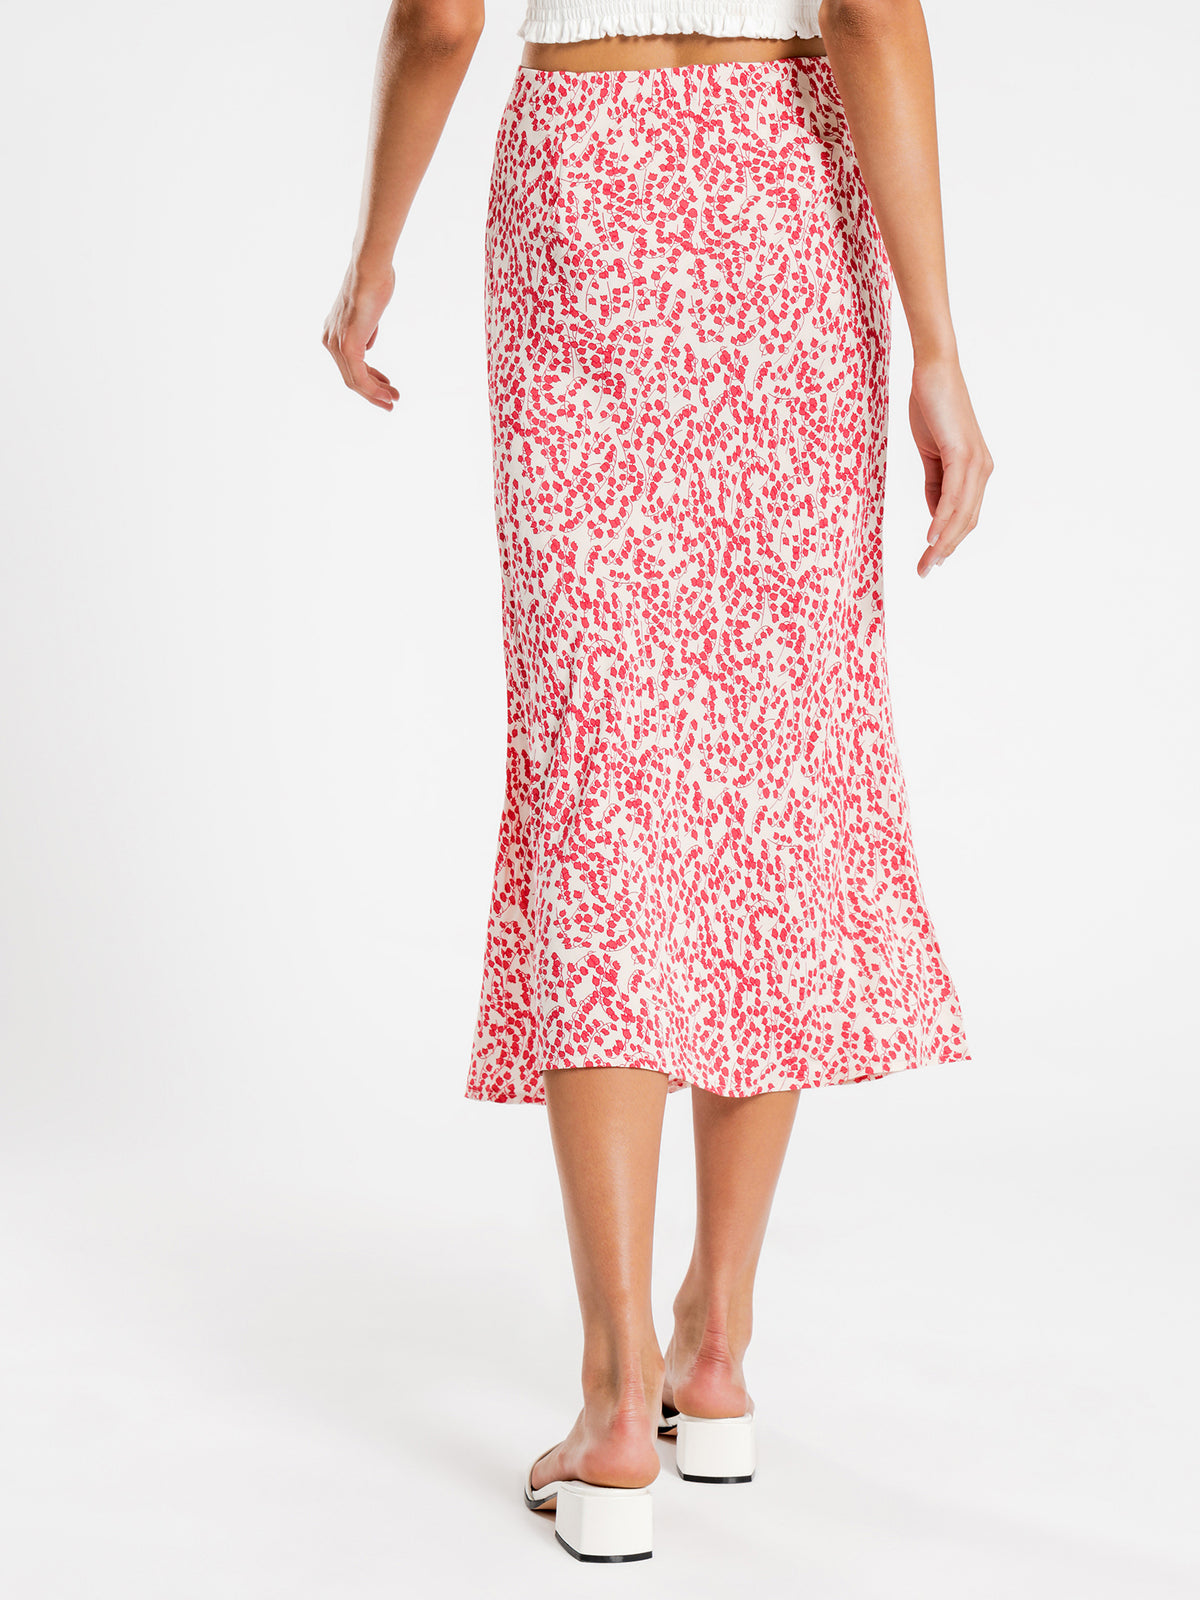 Neve Floral Midi Skirt in Floral